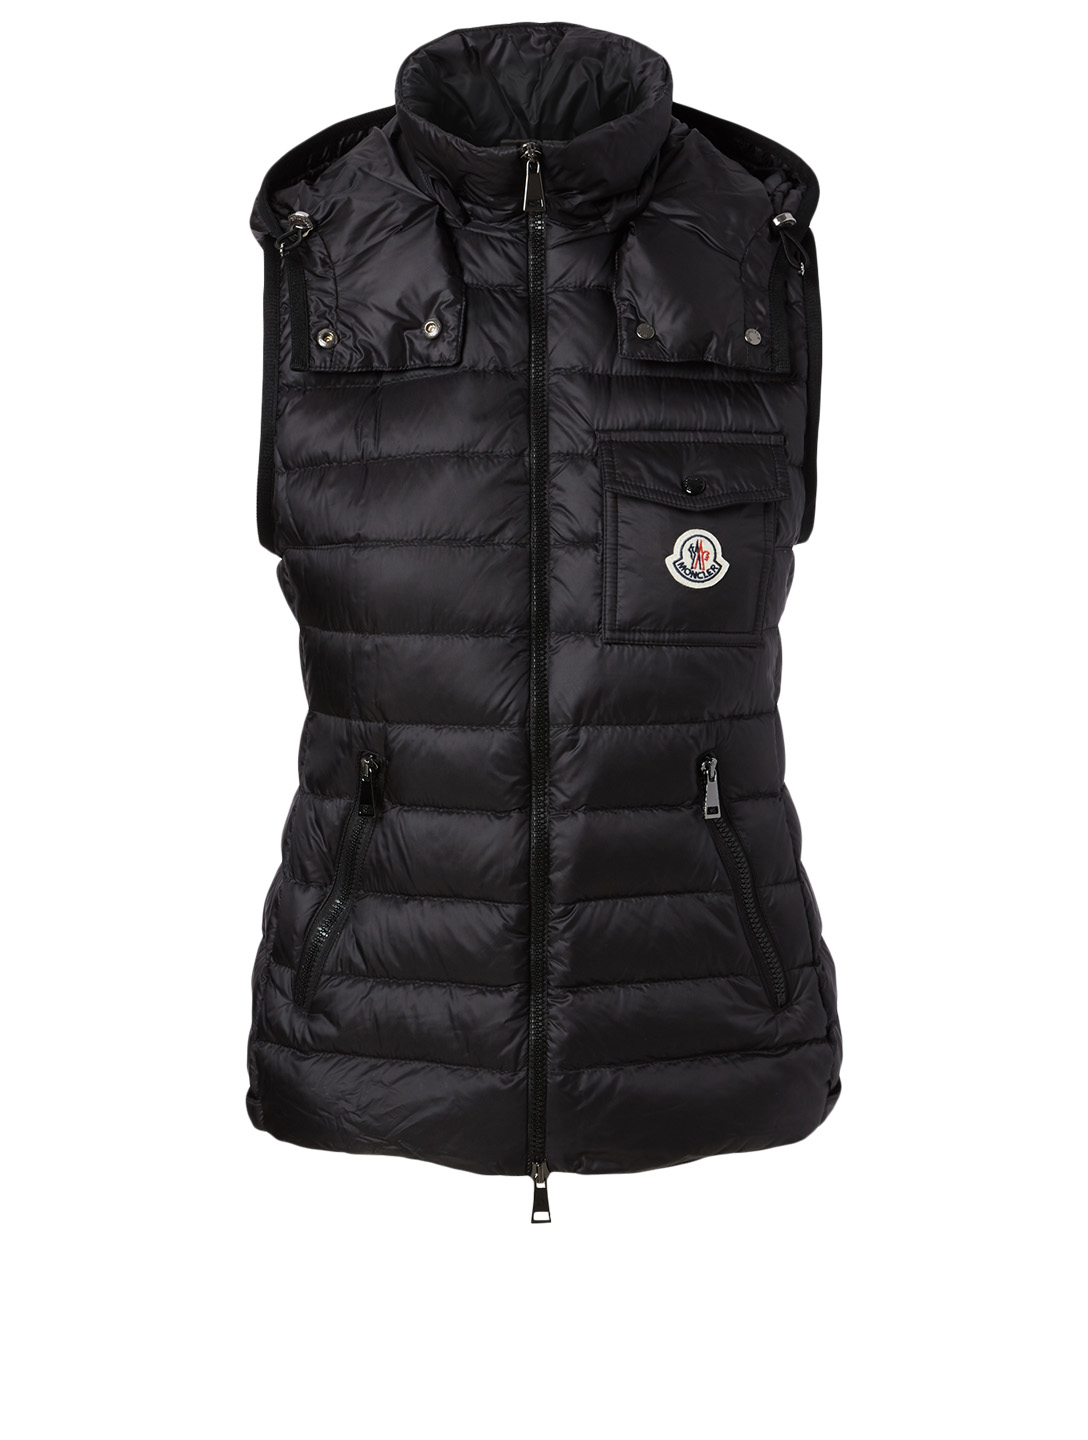 MONCLER Glycine Quilted Vest Women's Black